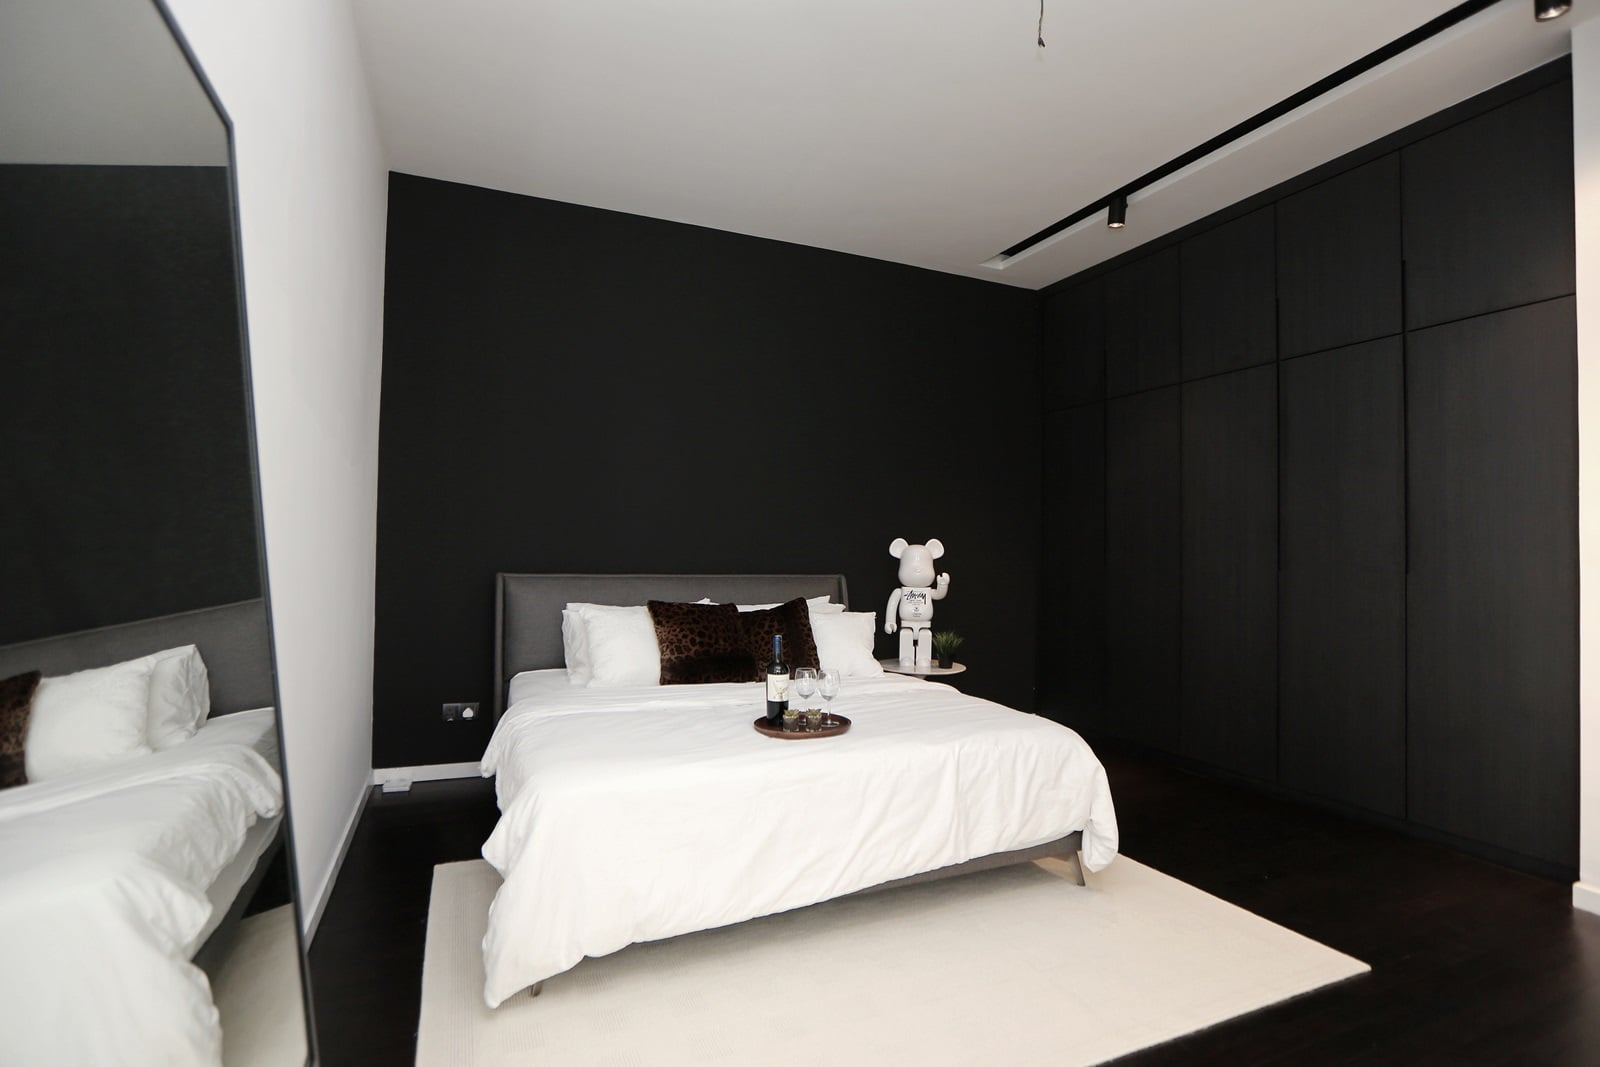 Monochrome bedroom interior styling at its finest.